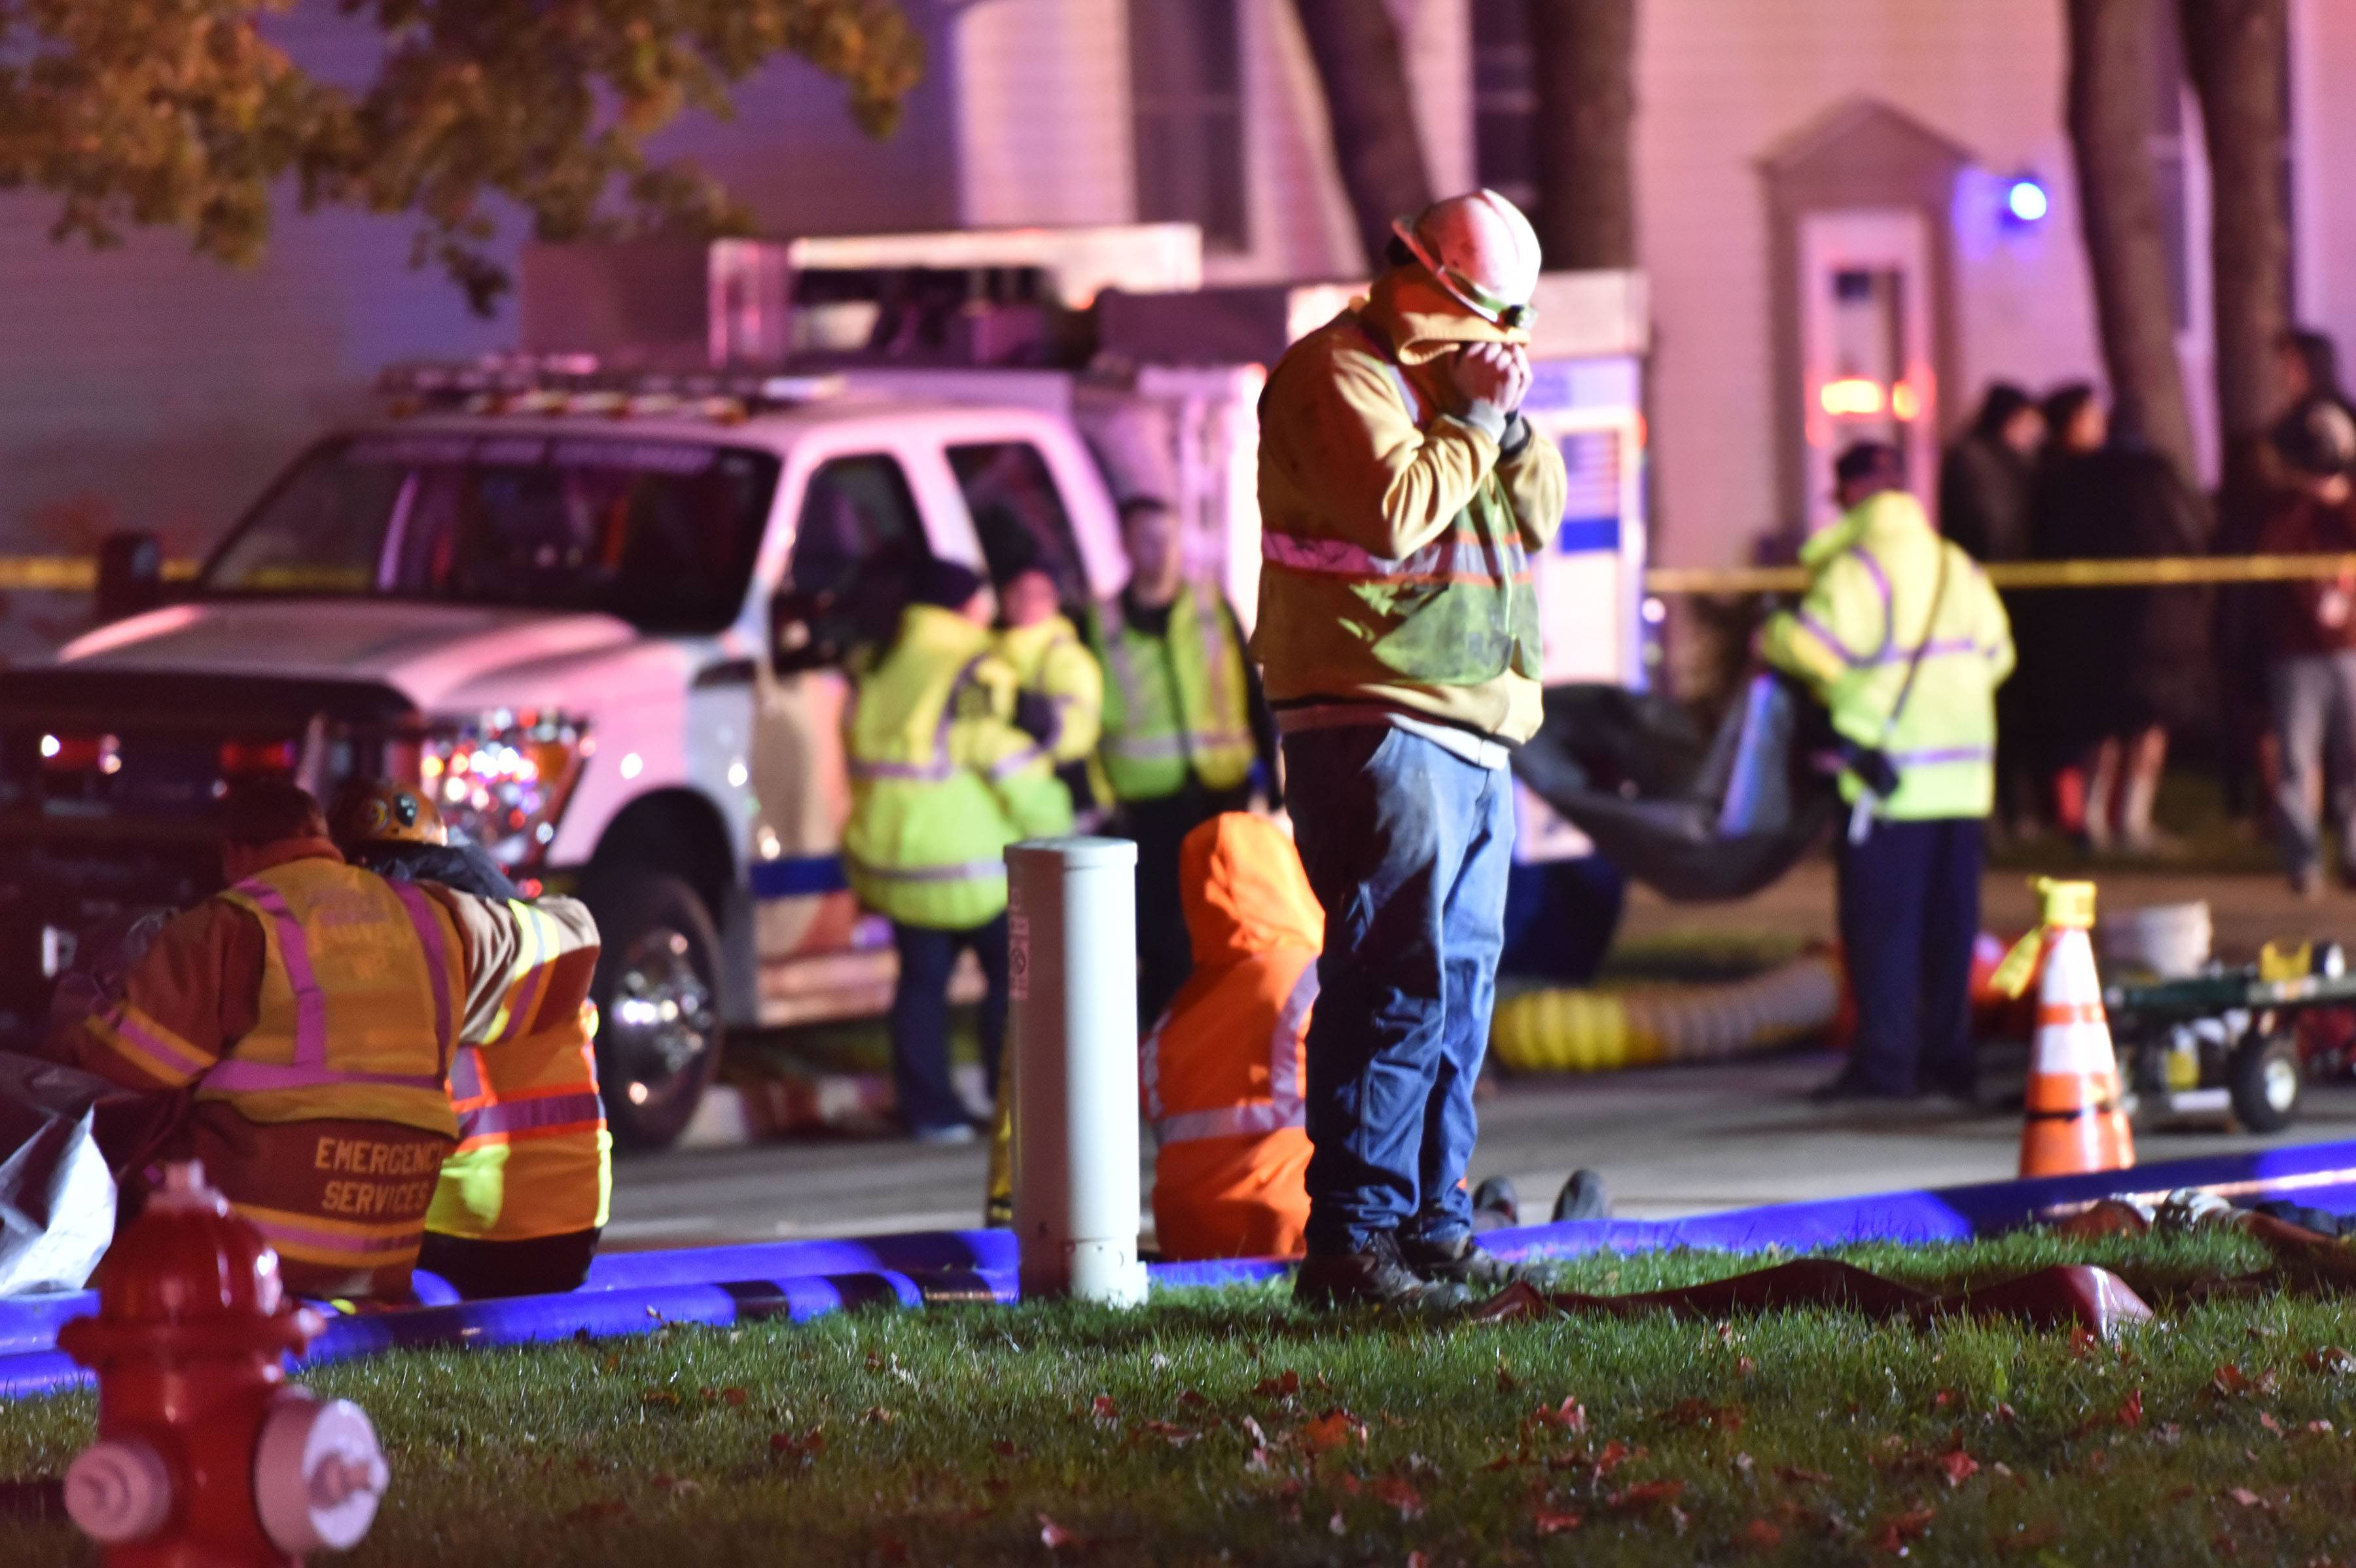 A man in a hard hat reacts after crews pulled a person from a sewer line on South Park Boulevard in Streamwood Wednesday night.